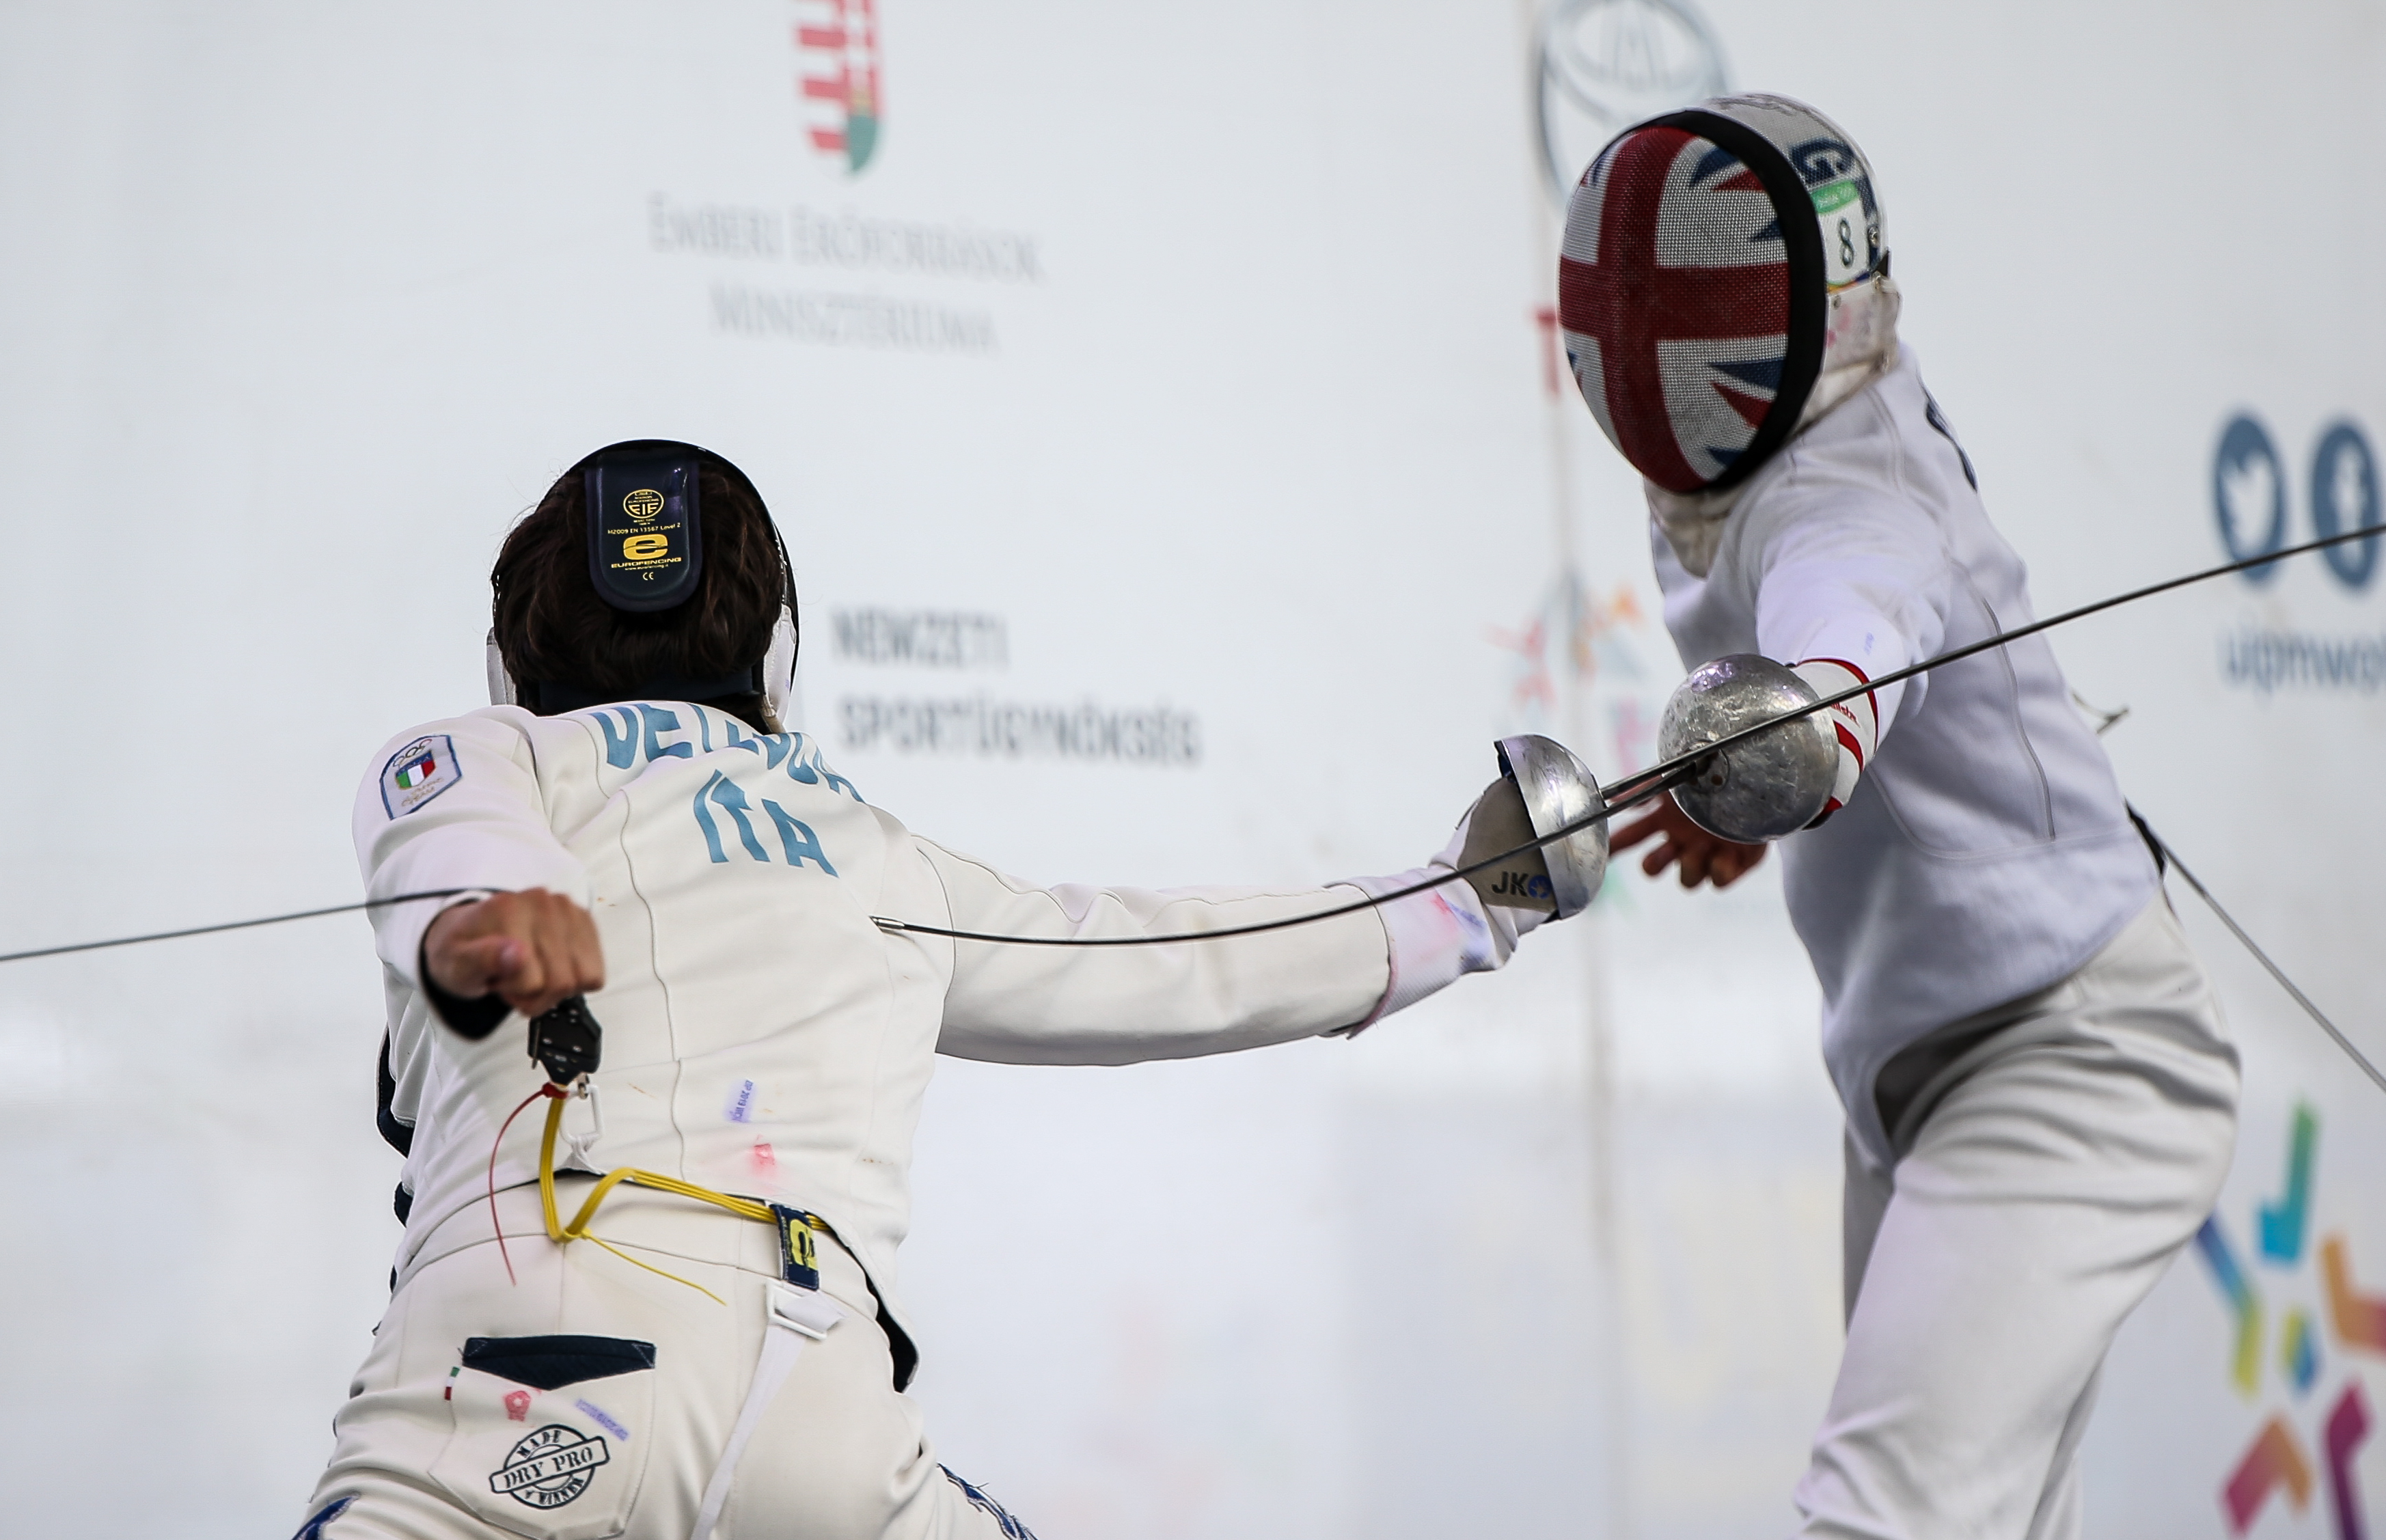 Men's Fencing at the UIPM 2019 Pentathlon World Championships in Budapest